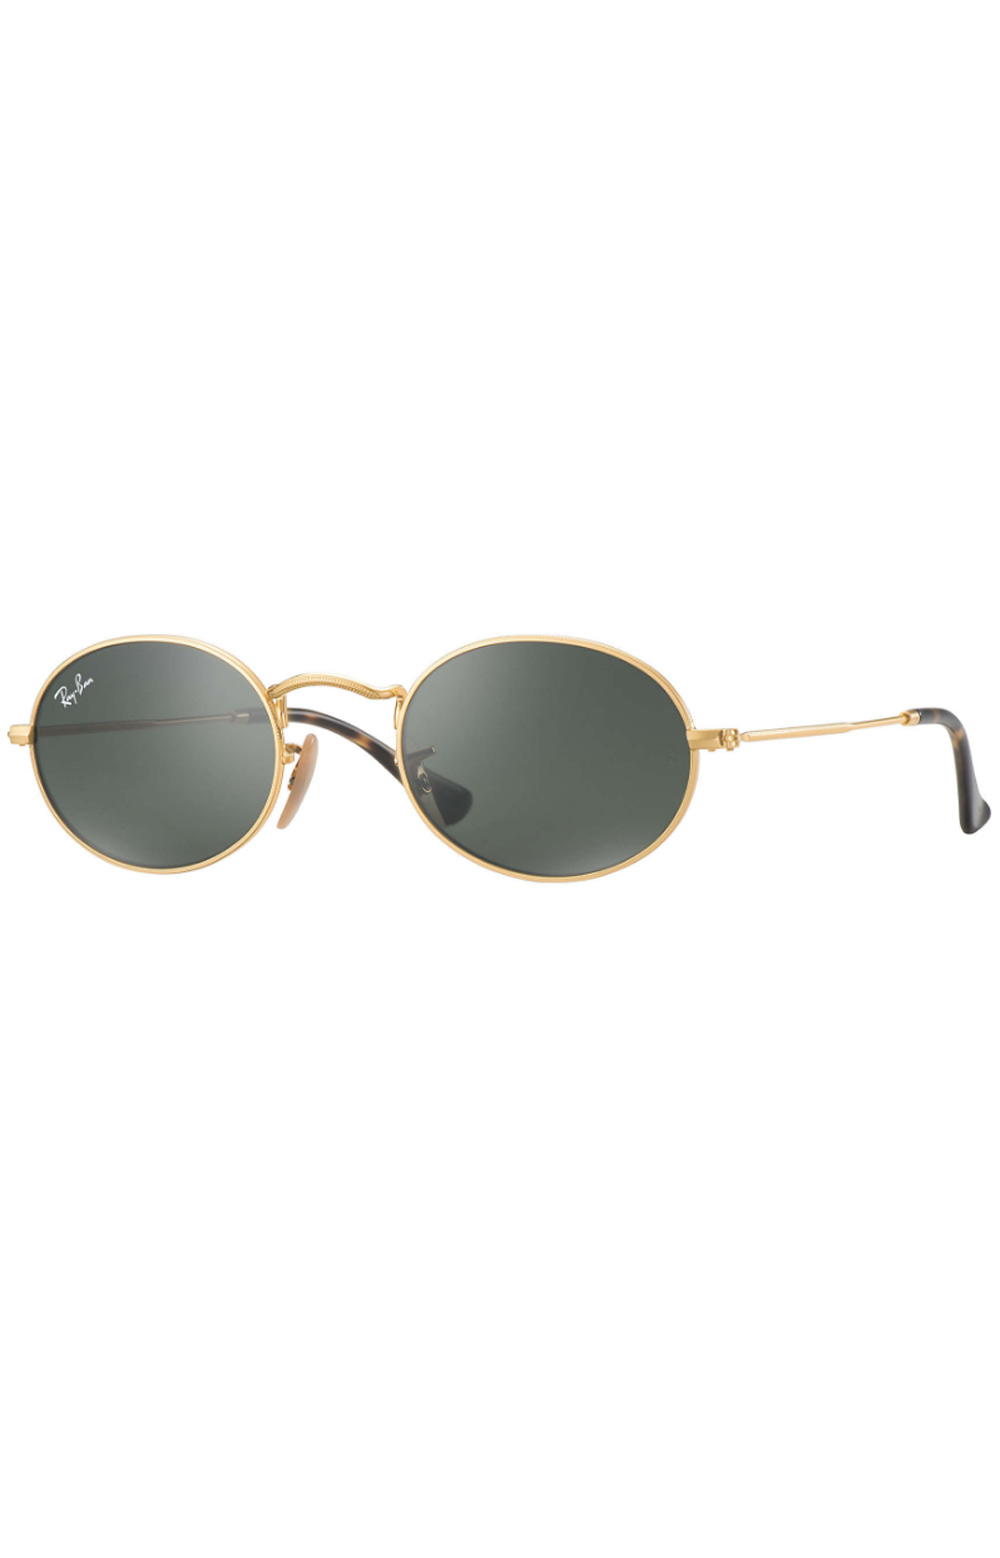 (001) Oval Sunglasses - Black/Gold Oval